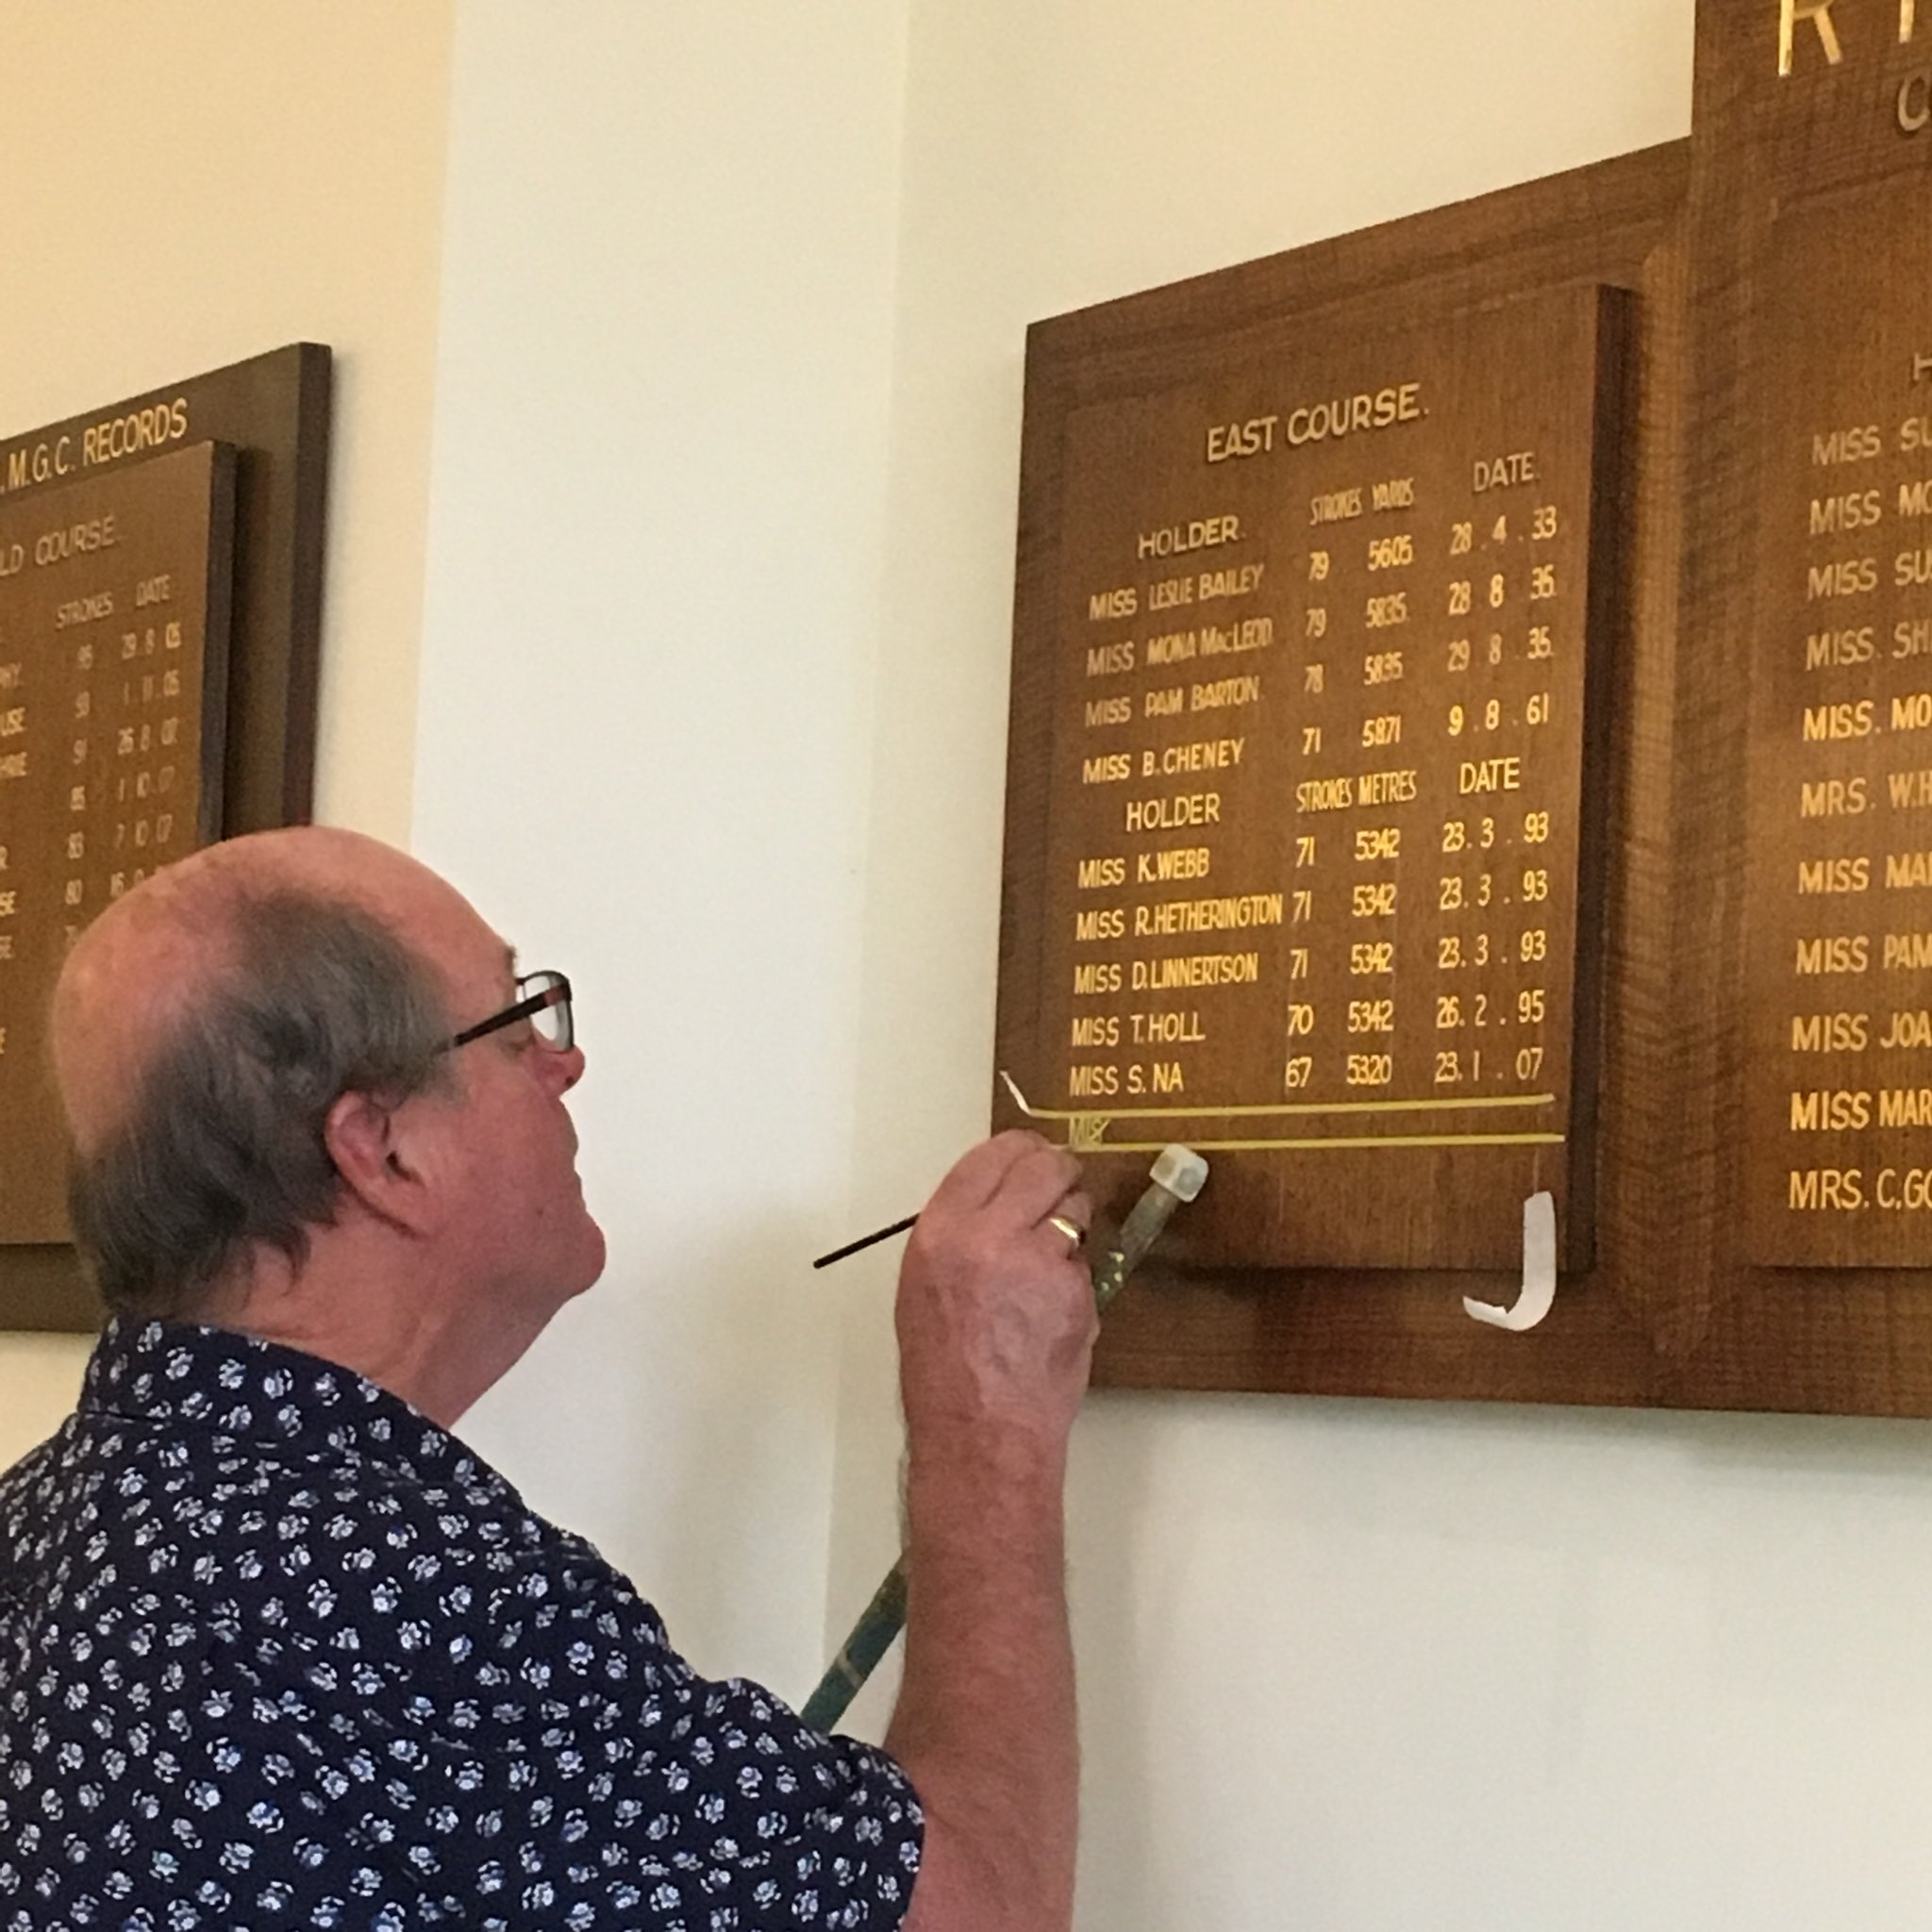 Amota On Twitter Its Offical Yuka Yasuda Has Had Her Name Holder 5825 Added To The Royal Melbourne Golf Club East Course Records Board Tournament